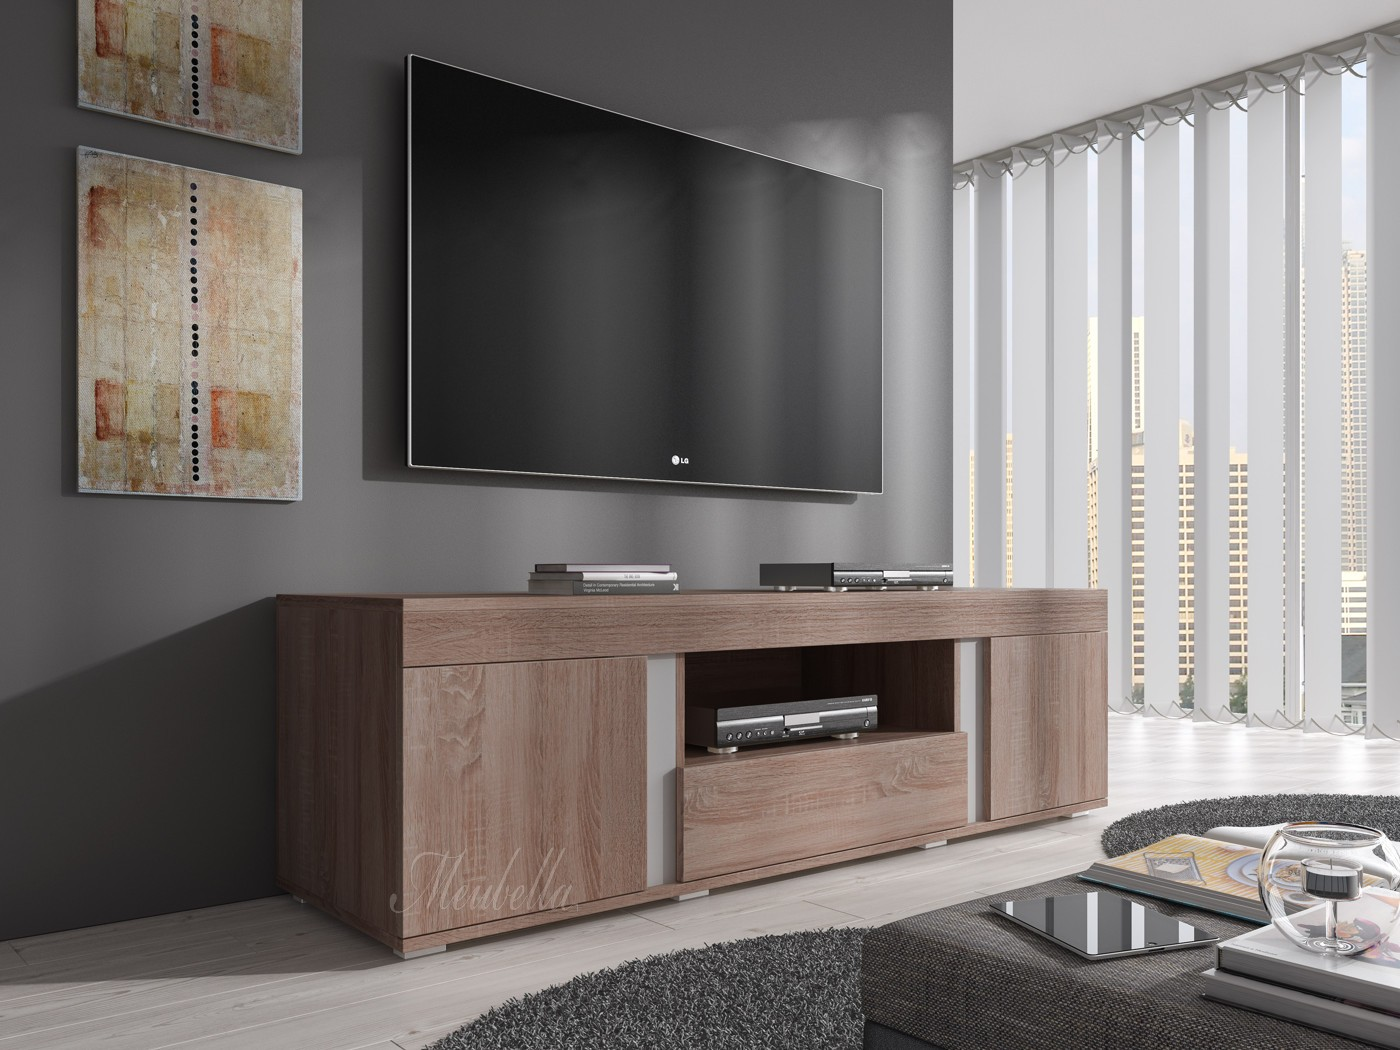 tv meubel alvarez truffel eiken 160 cm actie tv meubels kasten en vitrinekasten. Black Bedroom Furniture Sets. Home Design Ideas